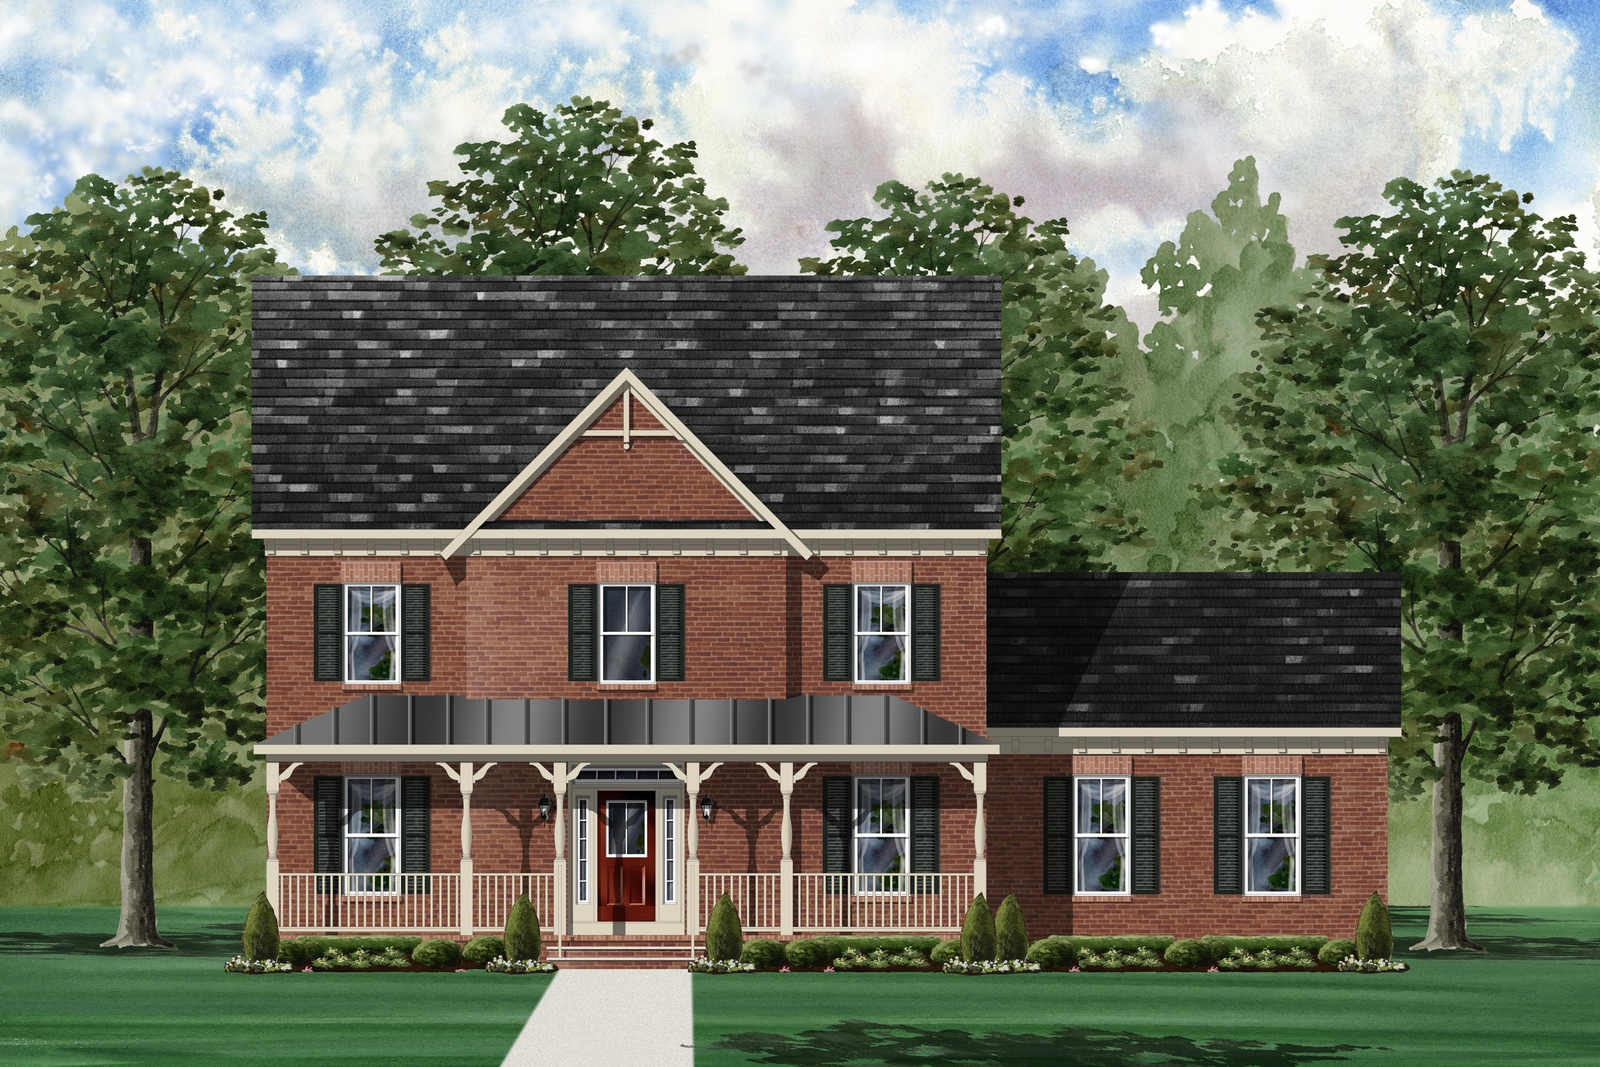 New Abingshire Home Model For Sale Heartland Homes